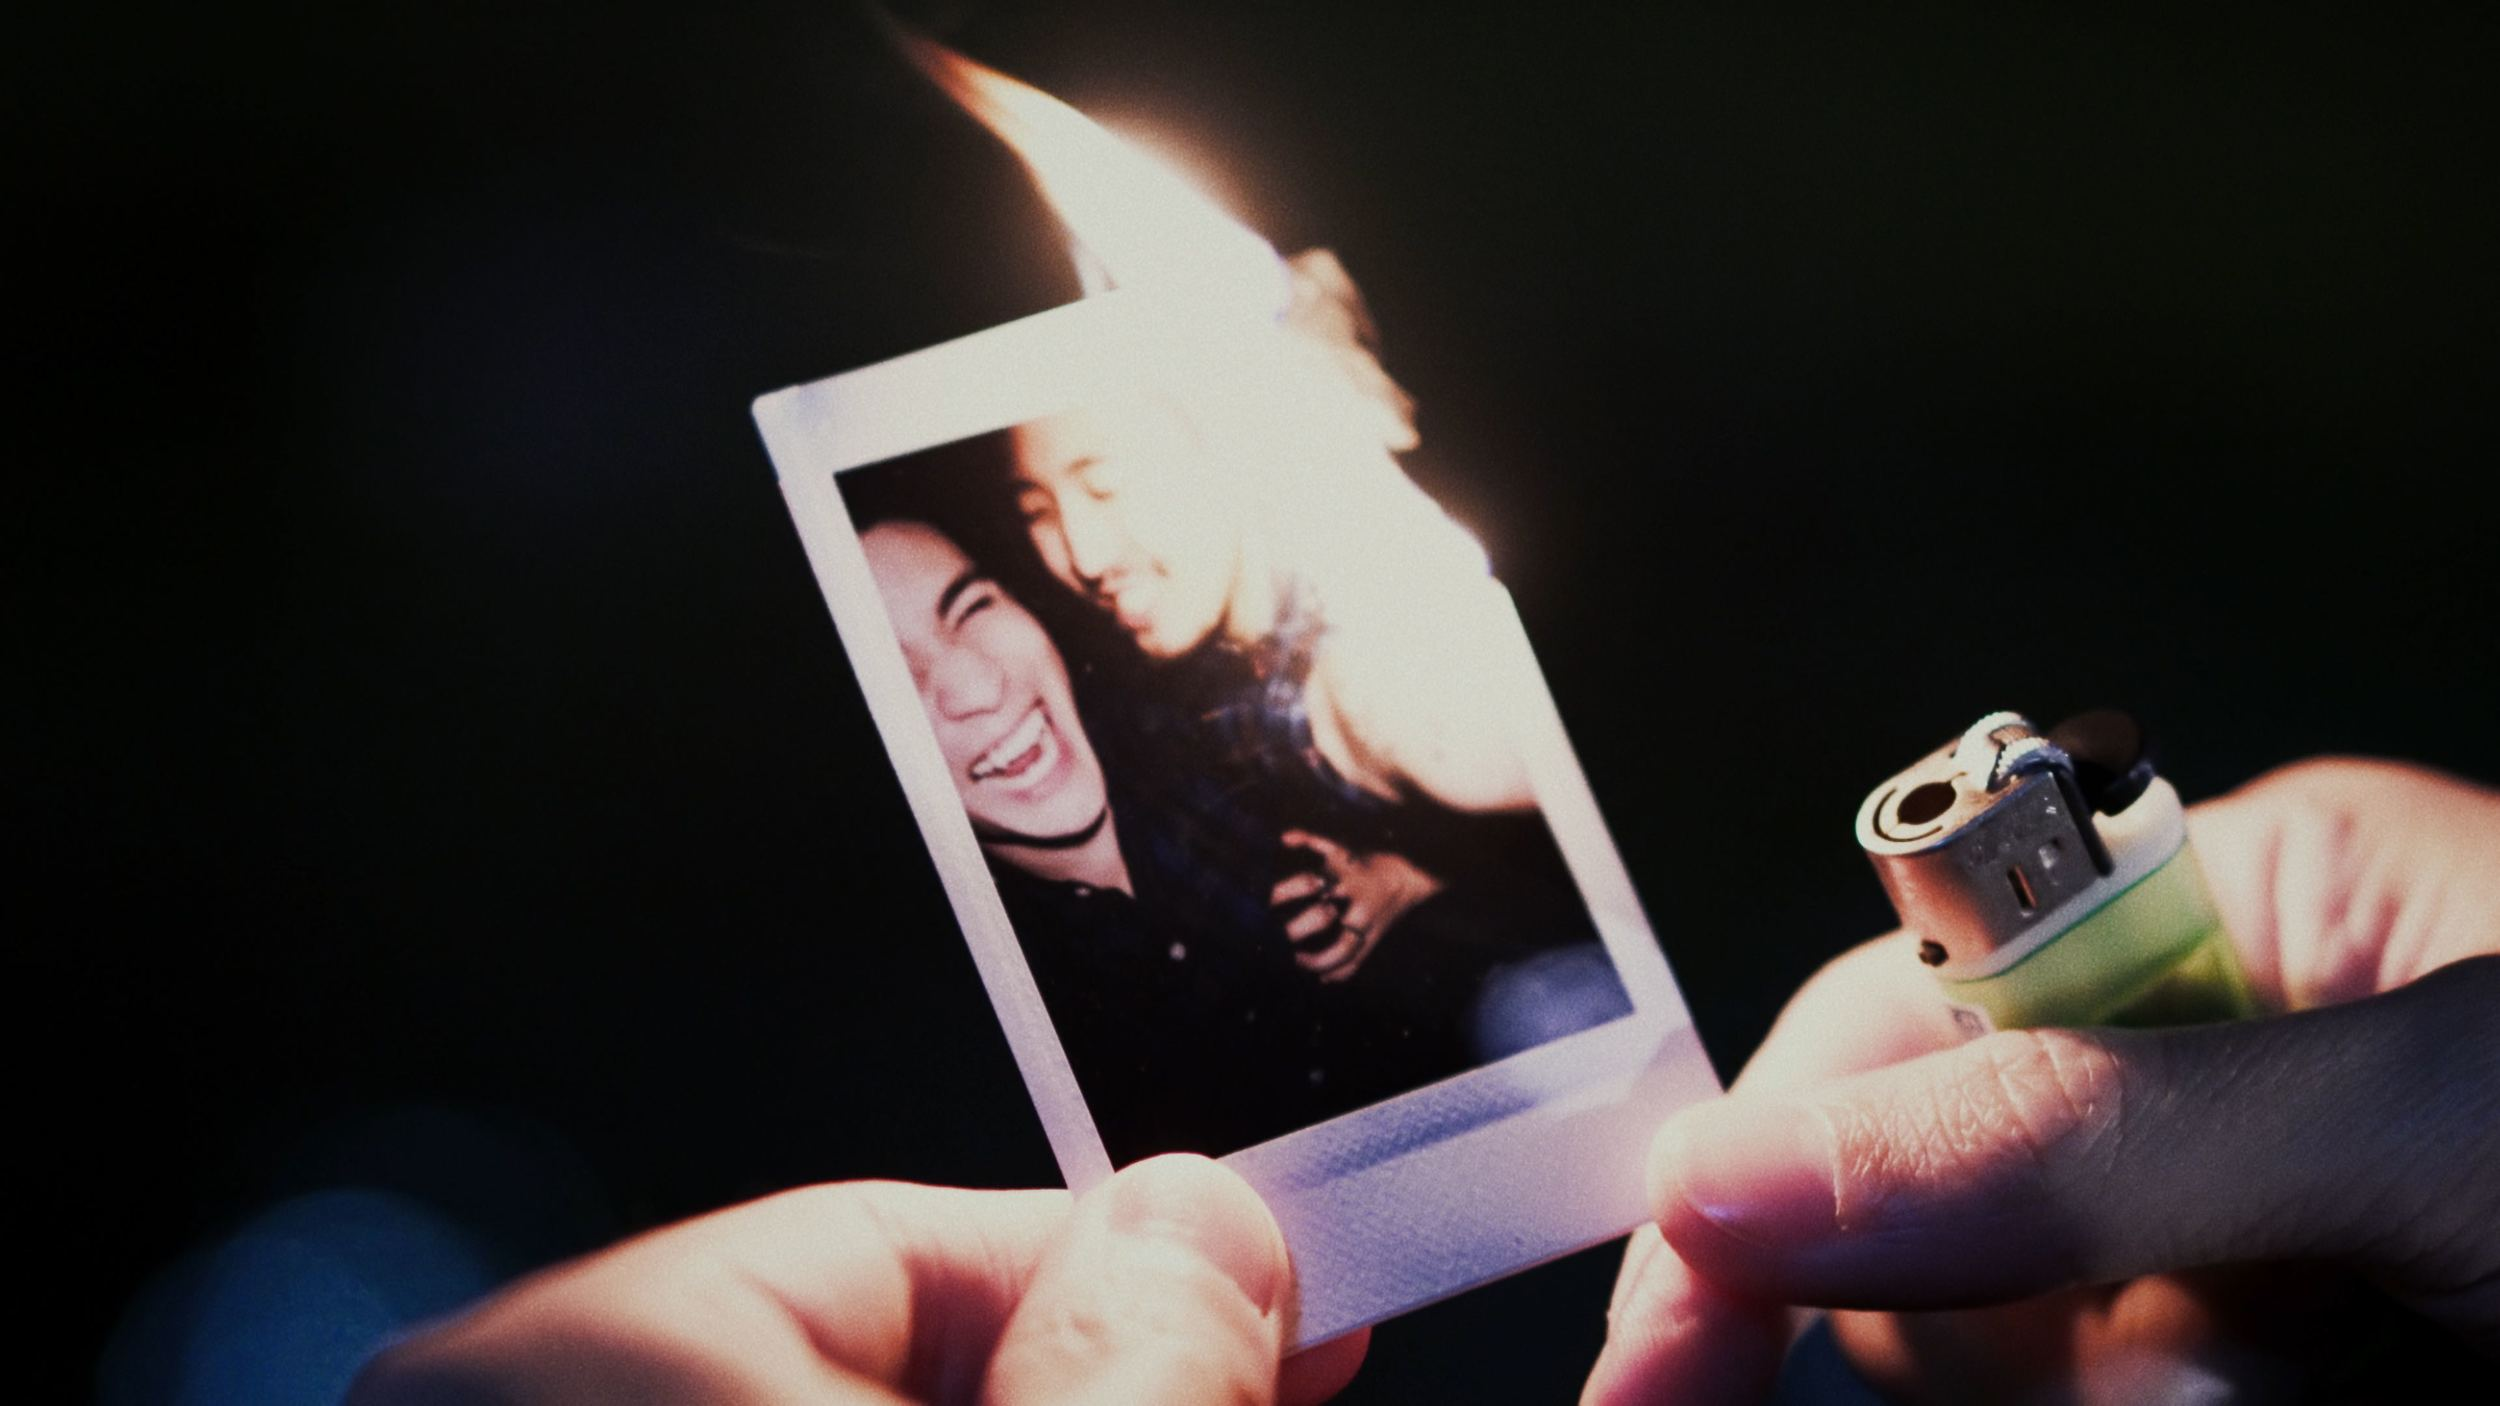 Burning The Picture.jpg